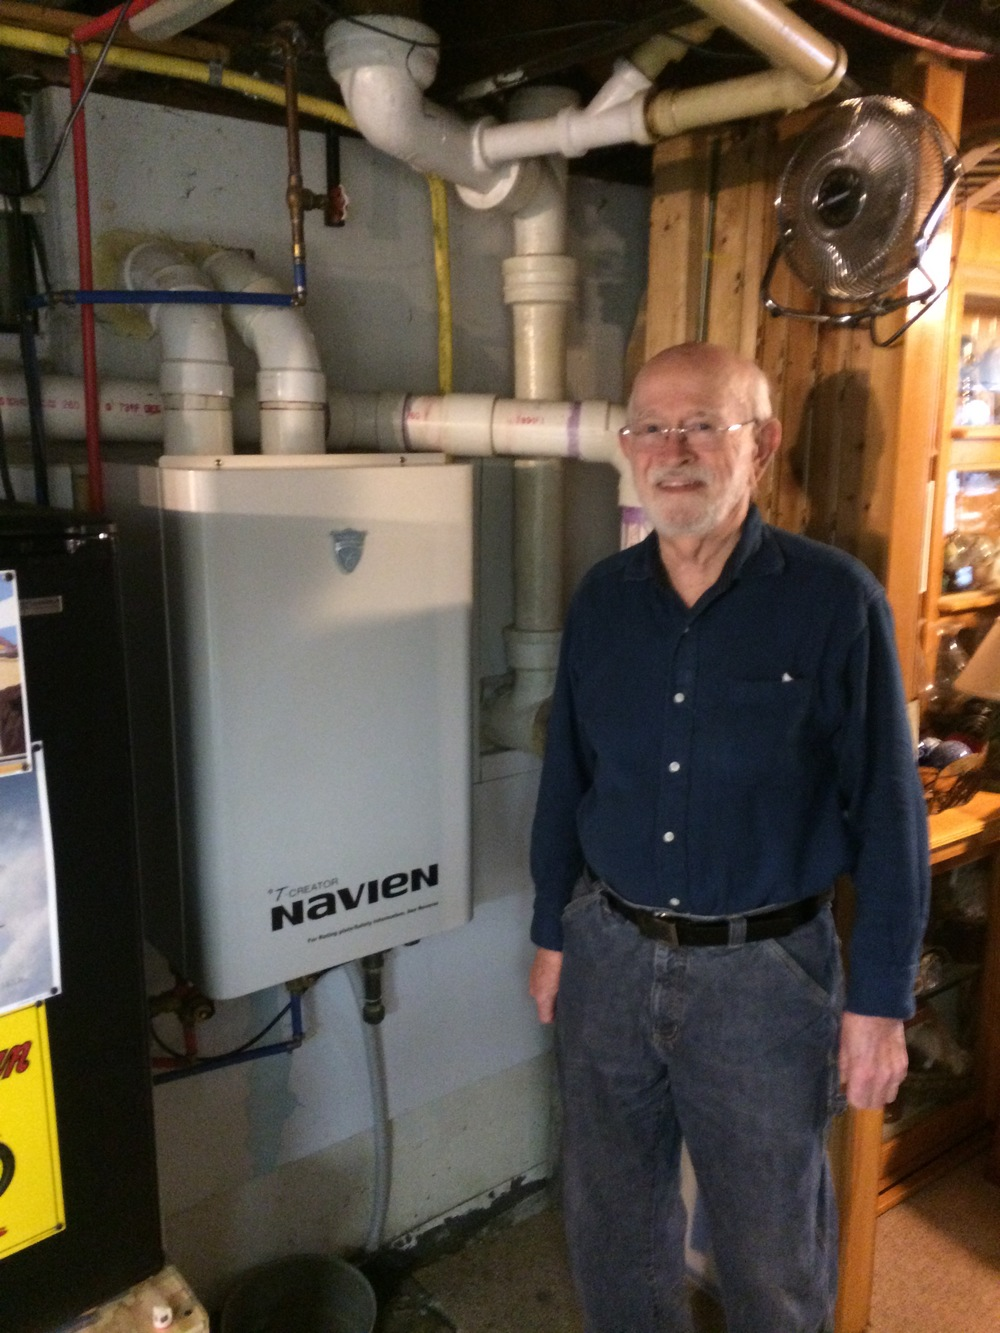 A customer and his Navien